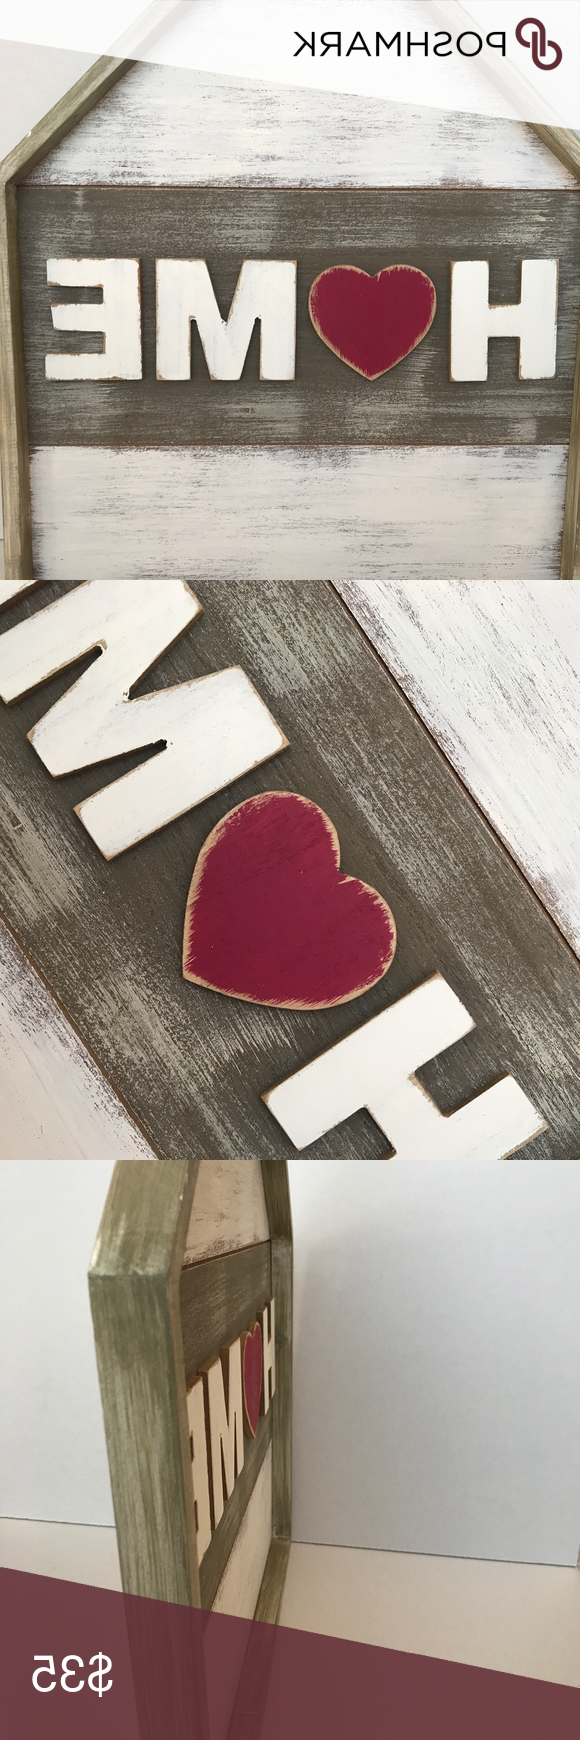 2020 Hallmark Home Heart Wooden Wall Sign Nwt (View 8 of 20)